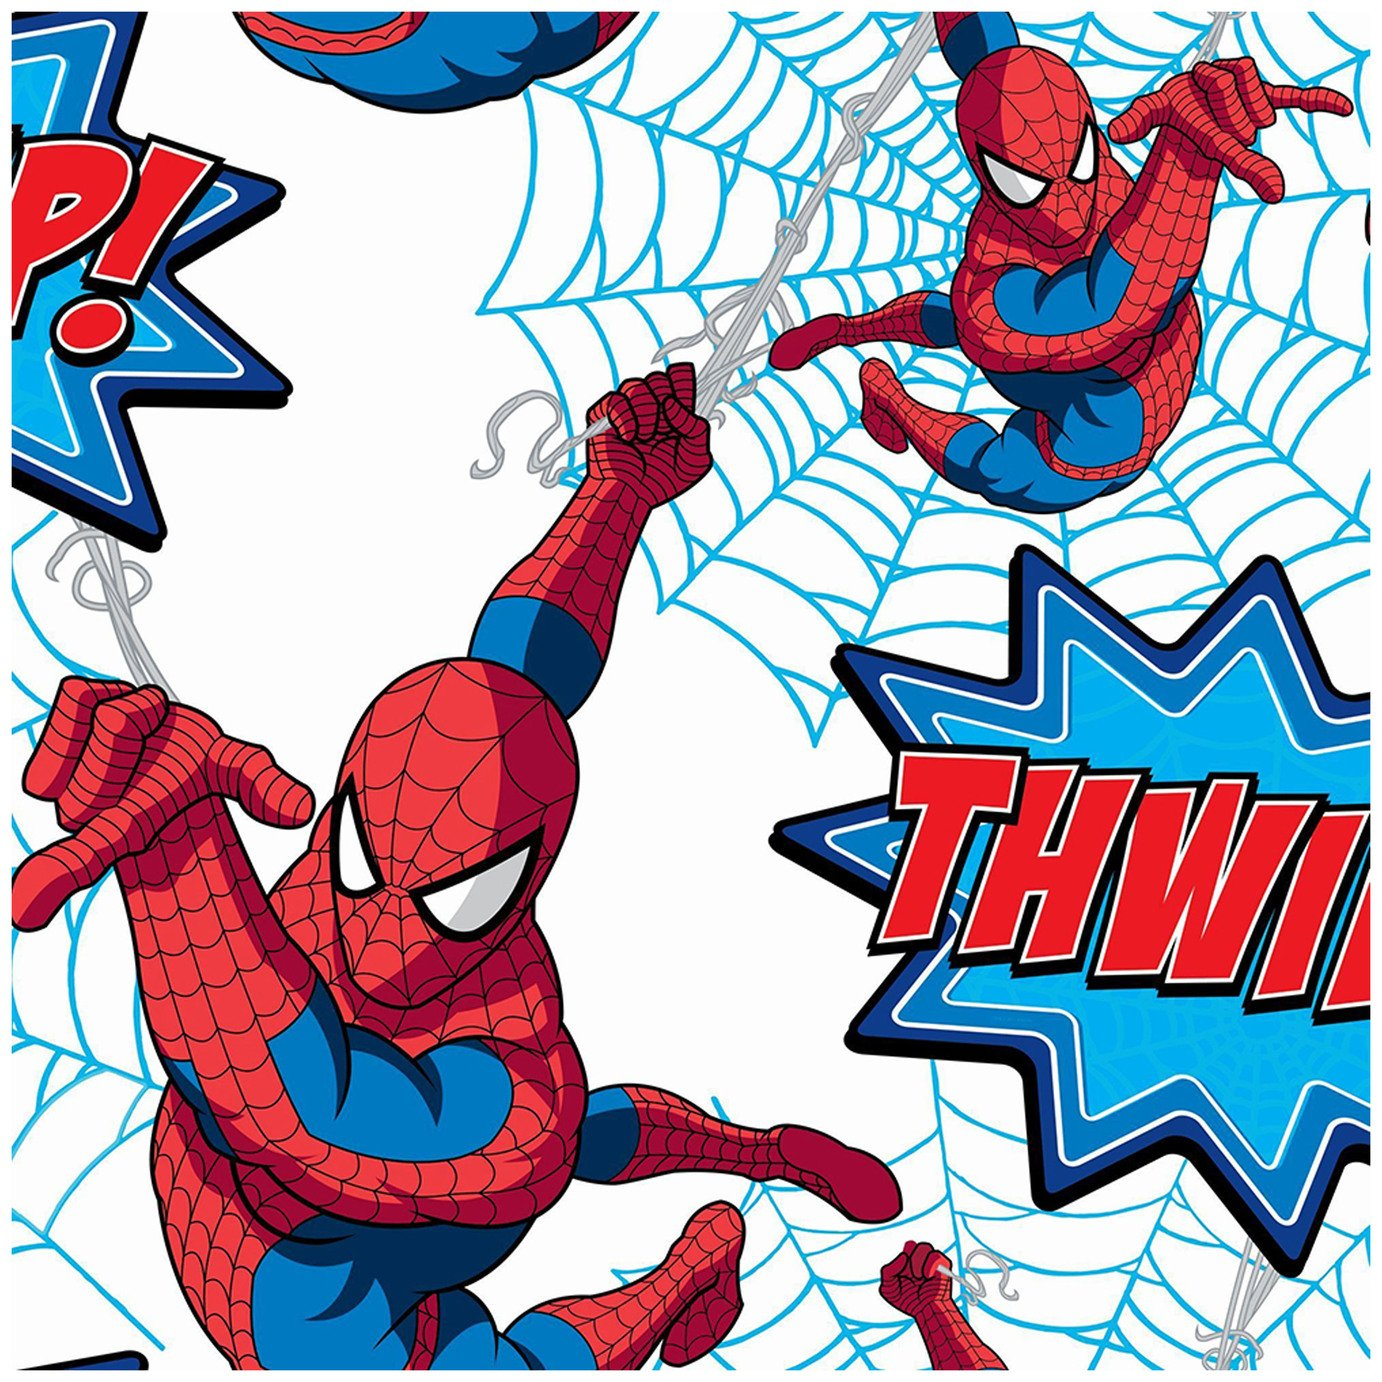 Marvel Spiderman Thwipp Wallpaper